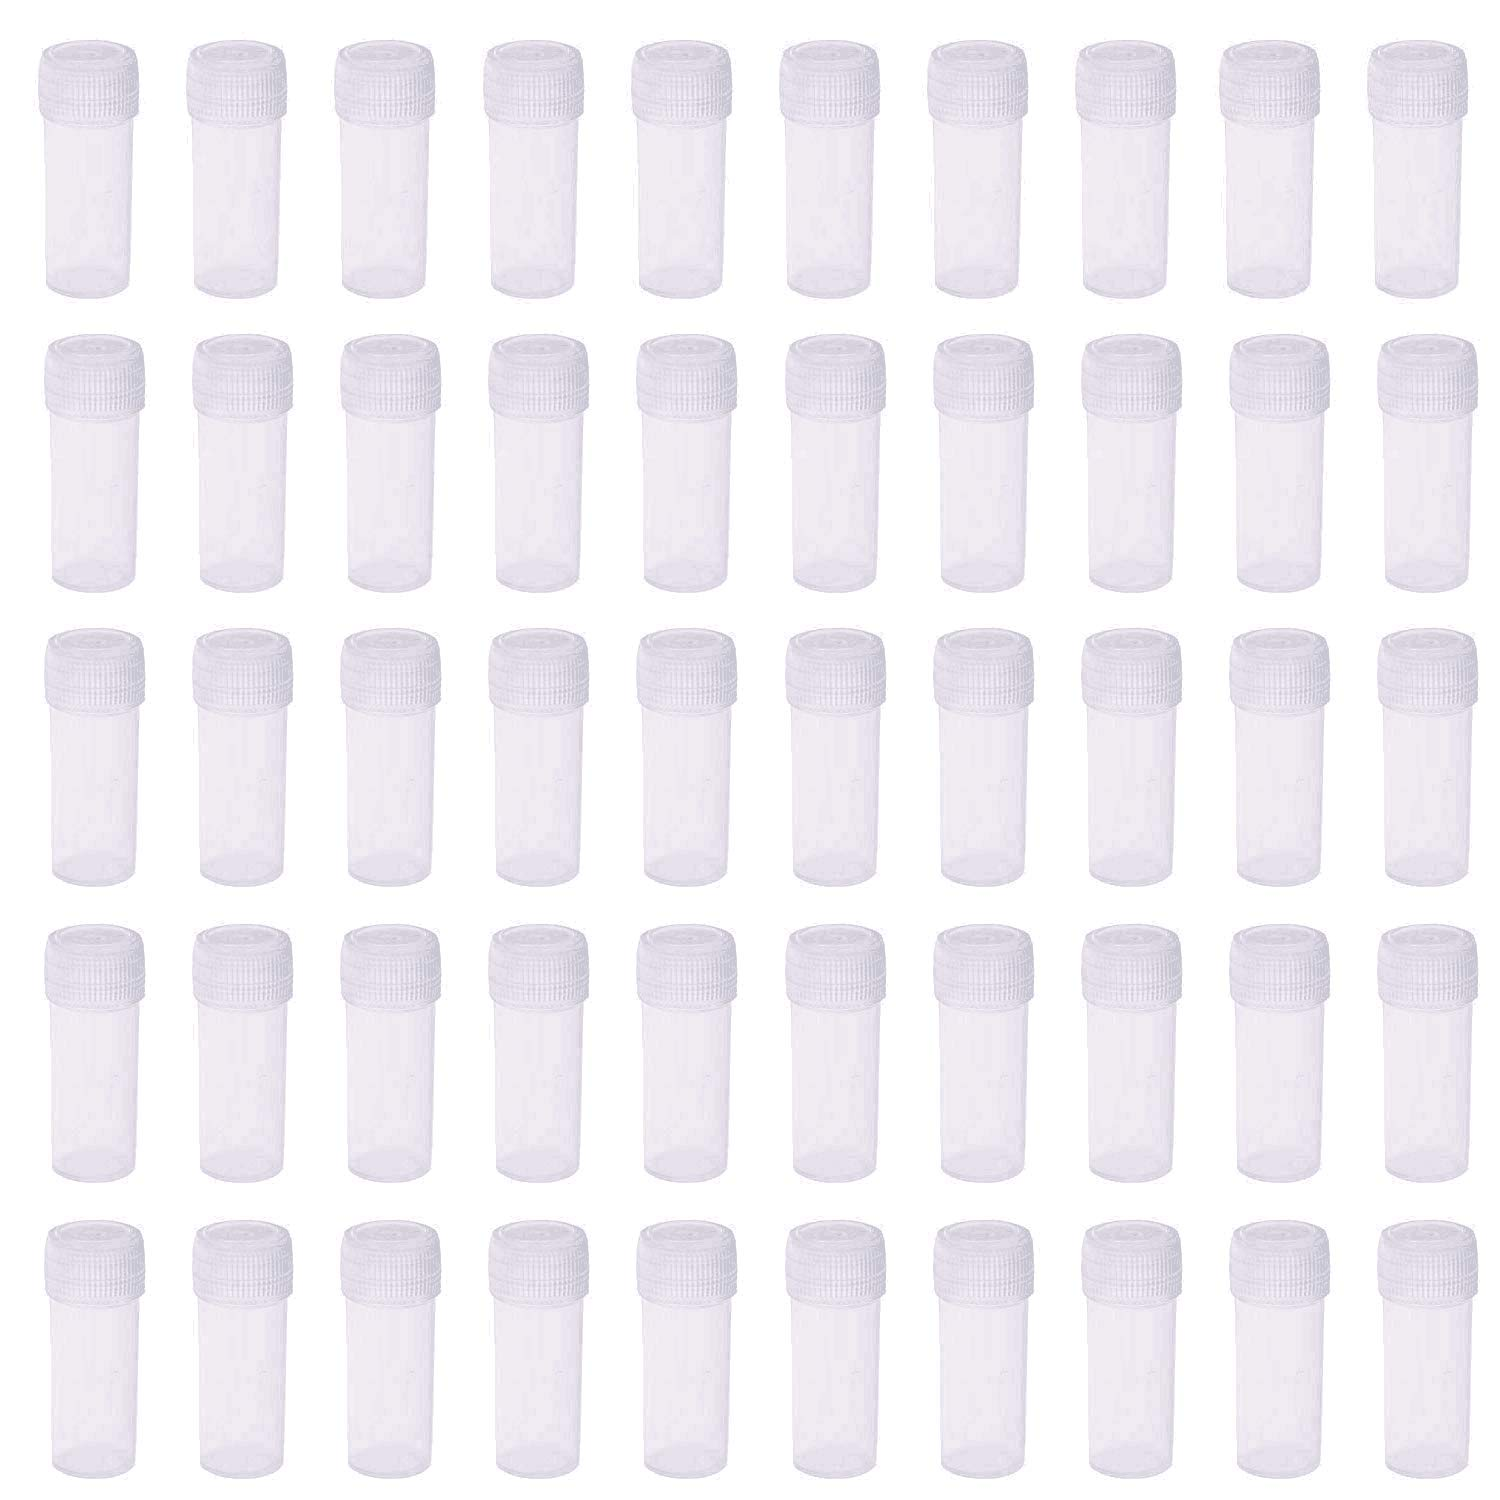 5ml Plastic Test Tubes Small Bottle Vial Storage Vial Storage Container for Lab -50pcs